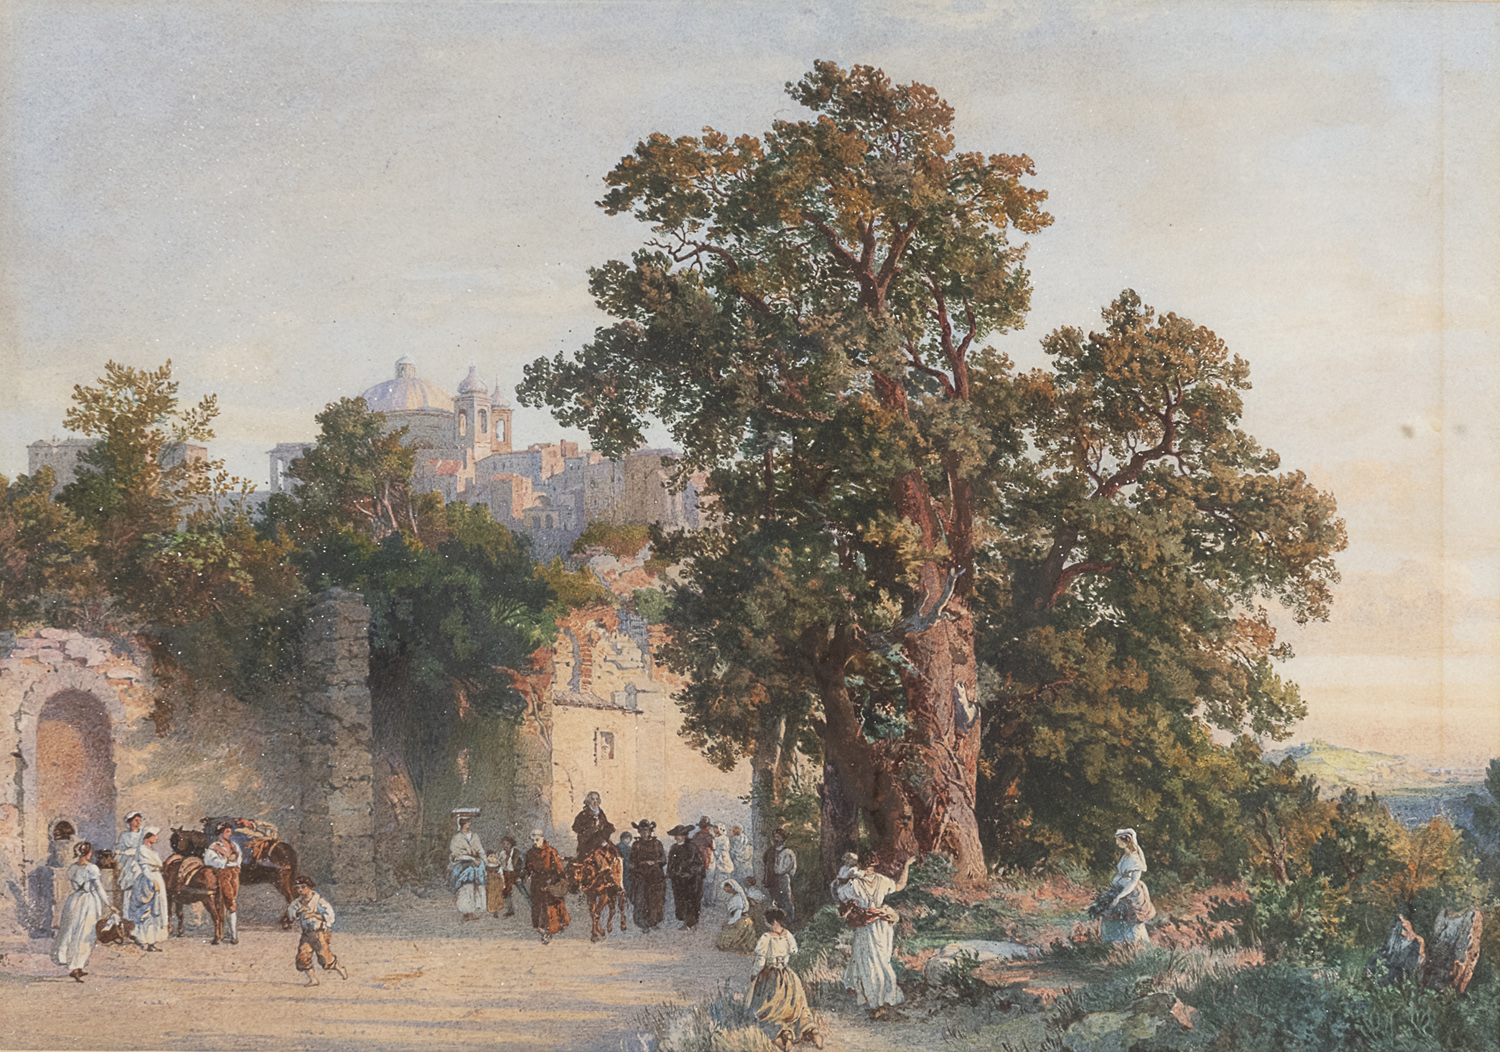 WATERCOLOUR BY JEAN ACHILLE BENOUVILLEattr. to 19TH CENTURY